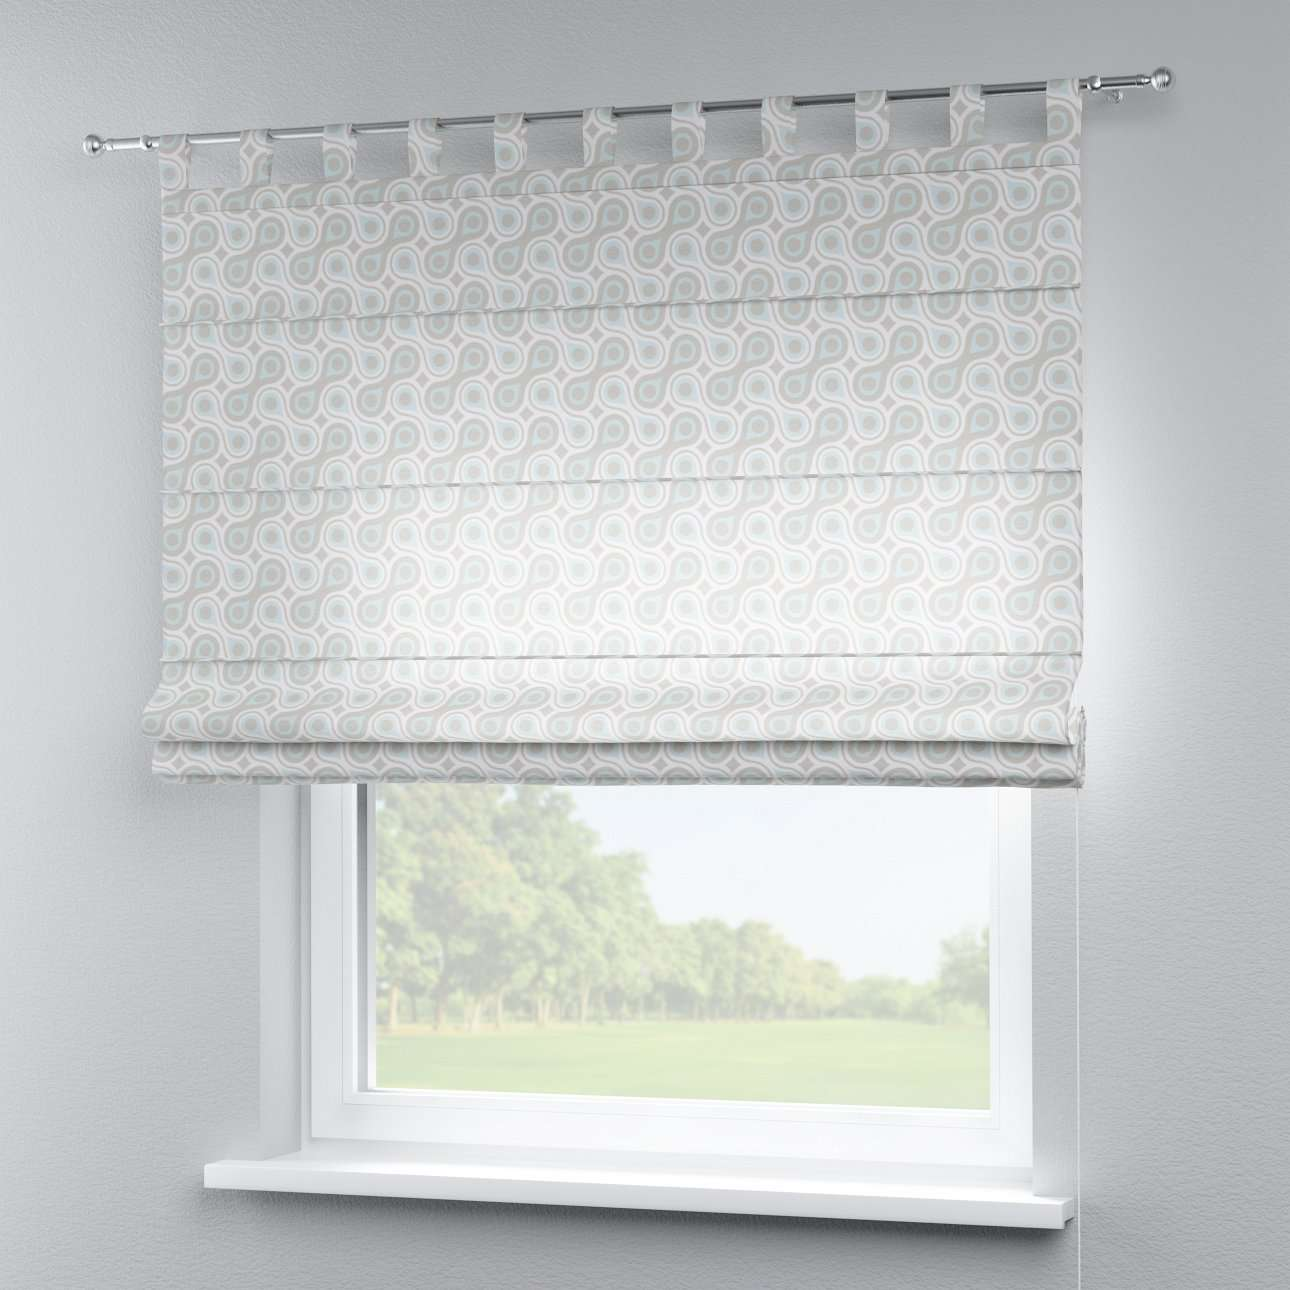 Verona tab top roman blind 80 × 170 cm (31.5 × 67 inch) in collection Flowers, fabric: 311-13